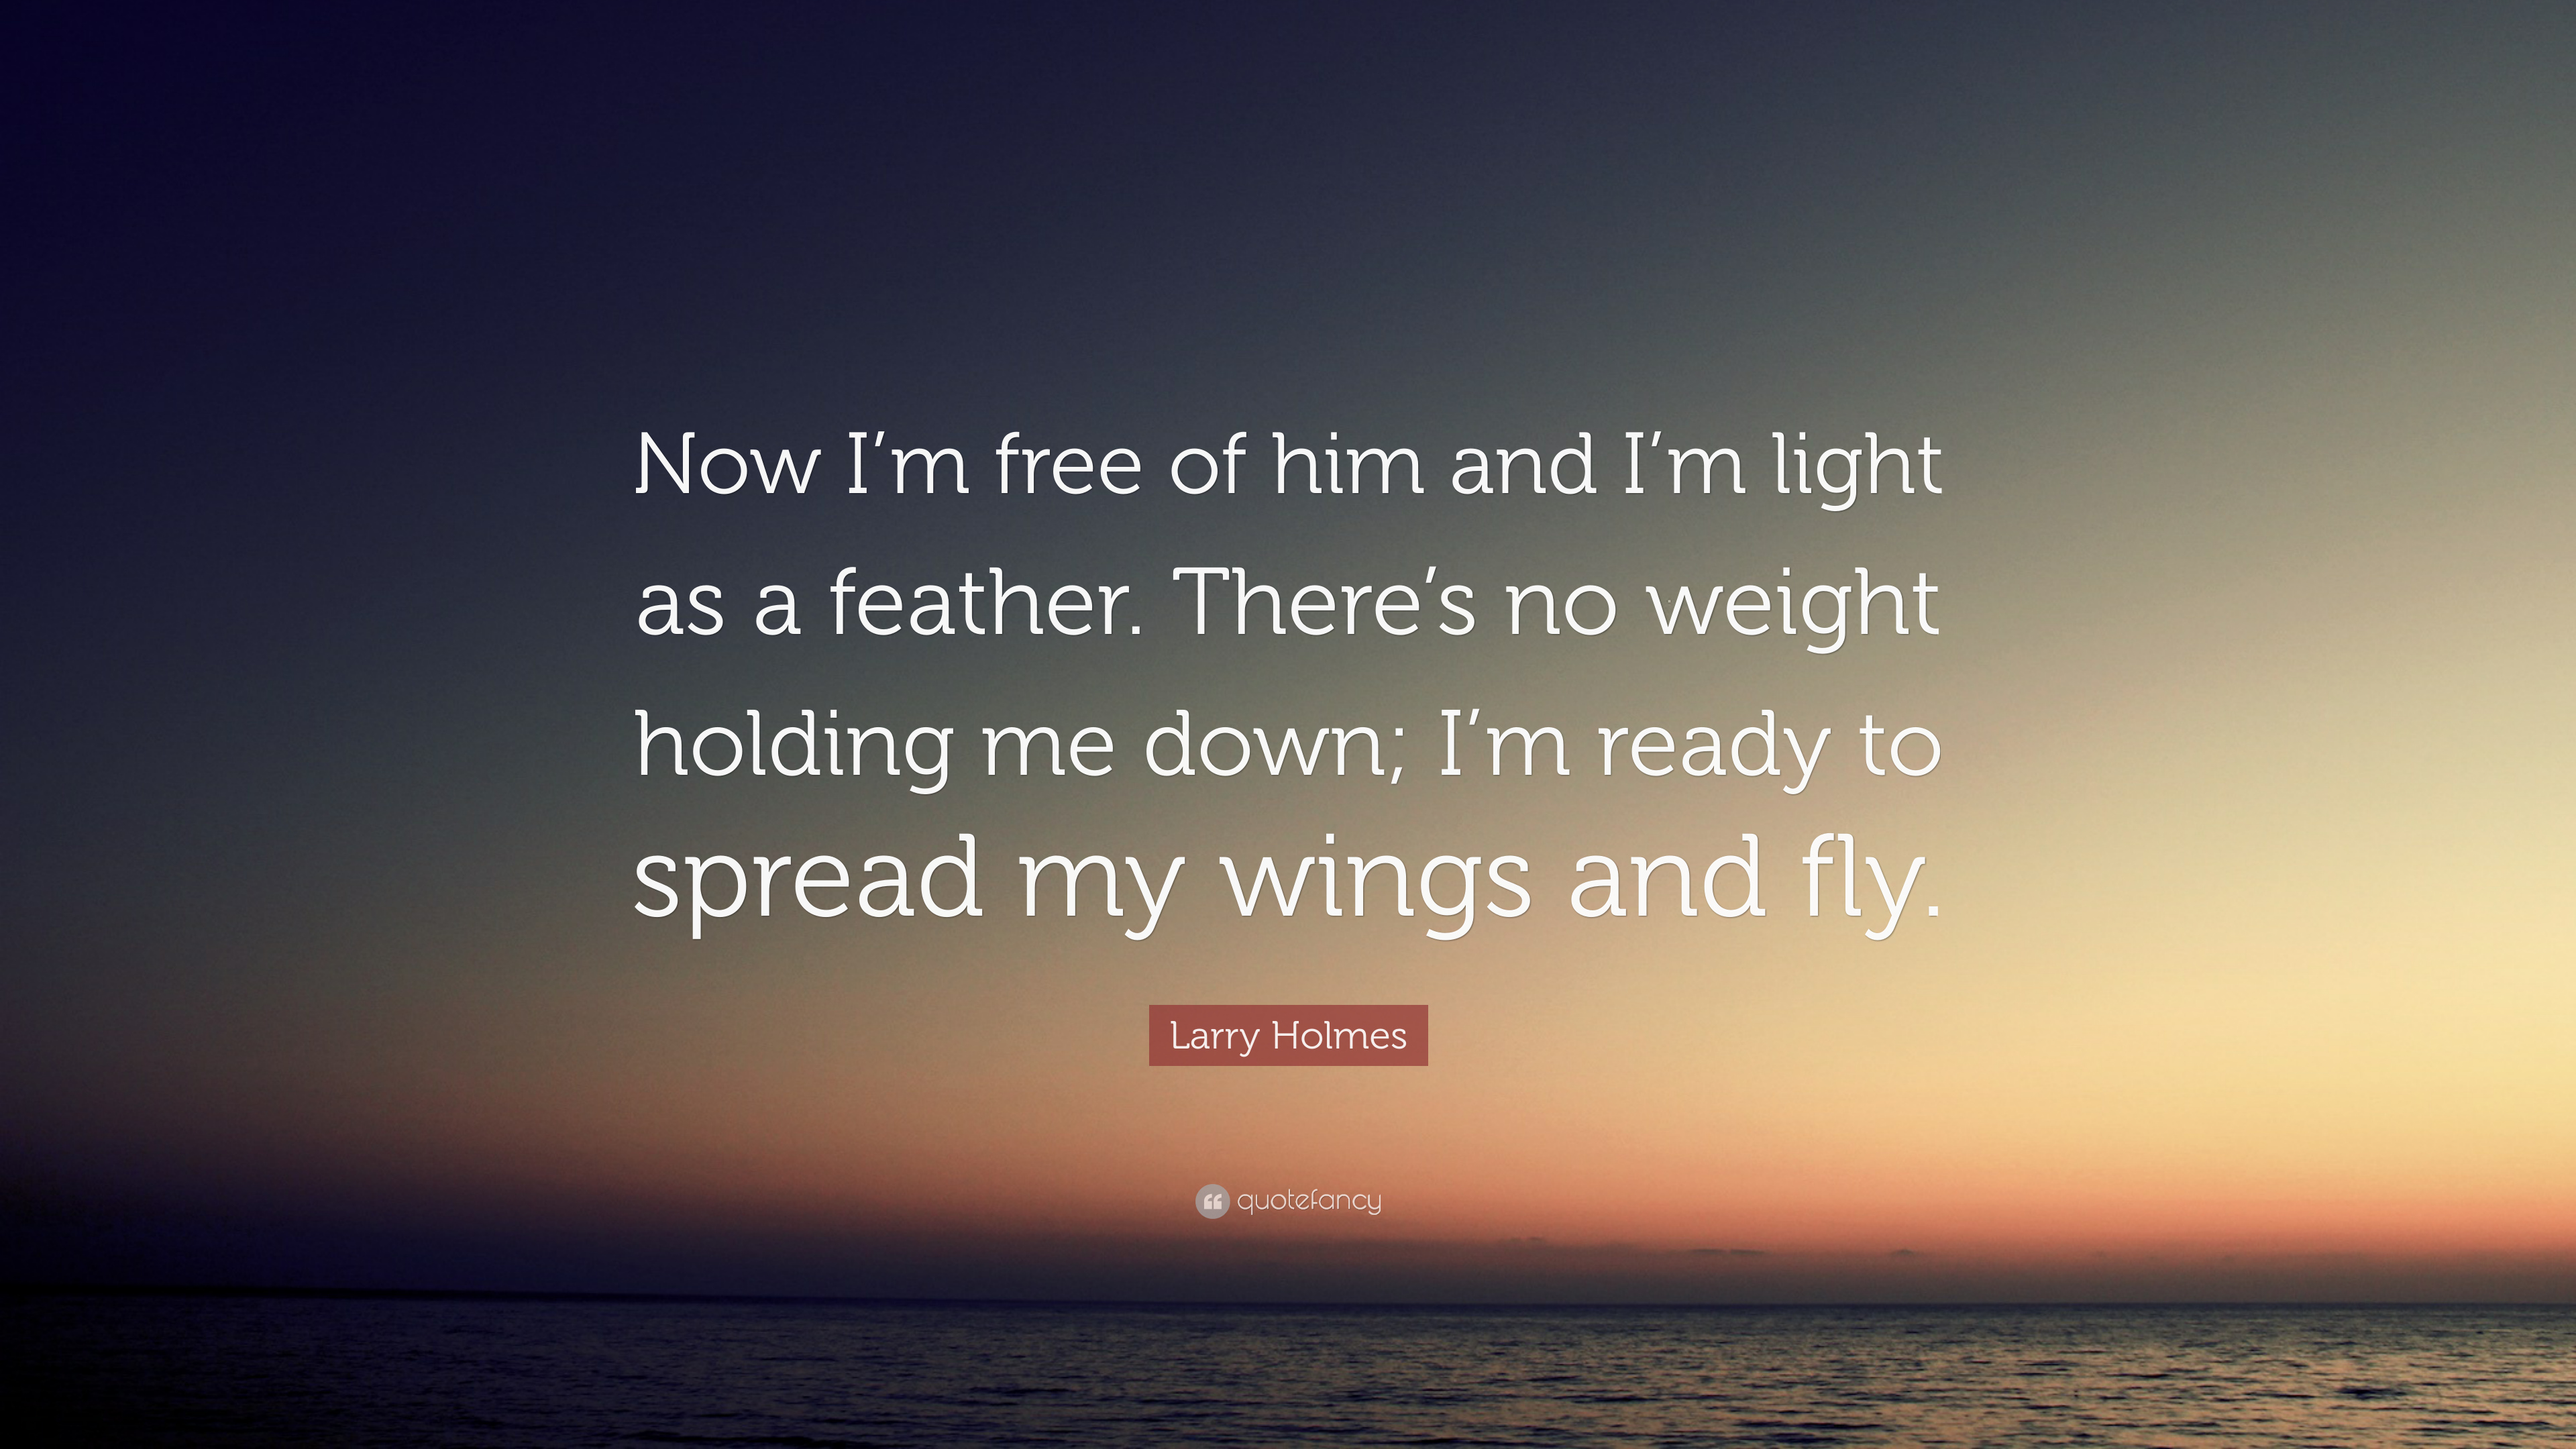 Larry Holmes Quote Now I M Free Of Him And I M Light As A Feather There S No Weight Holding Me Down I M Ready To Spread My Wings And Fly 9 Wallpapers Quotefancy